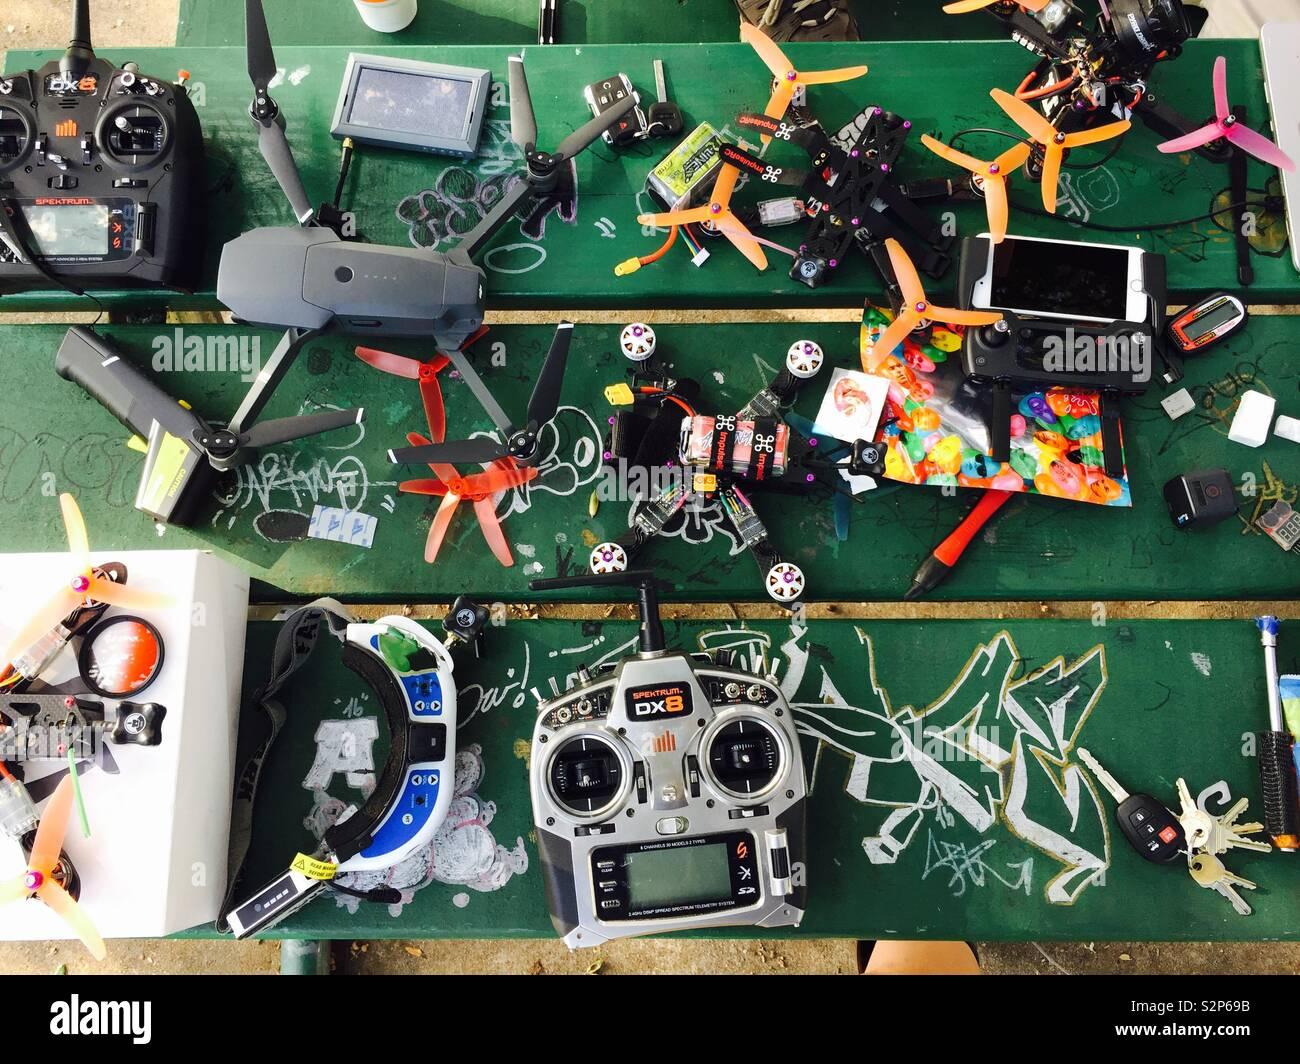 Drone stuff at the park - Stock Image